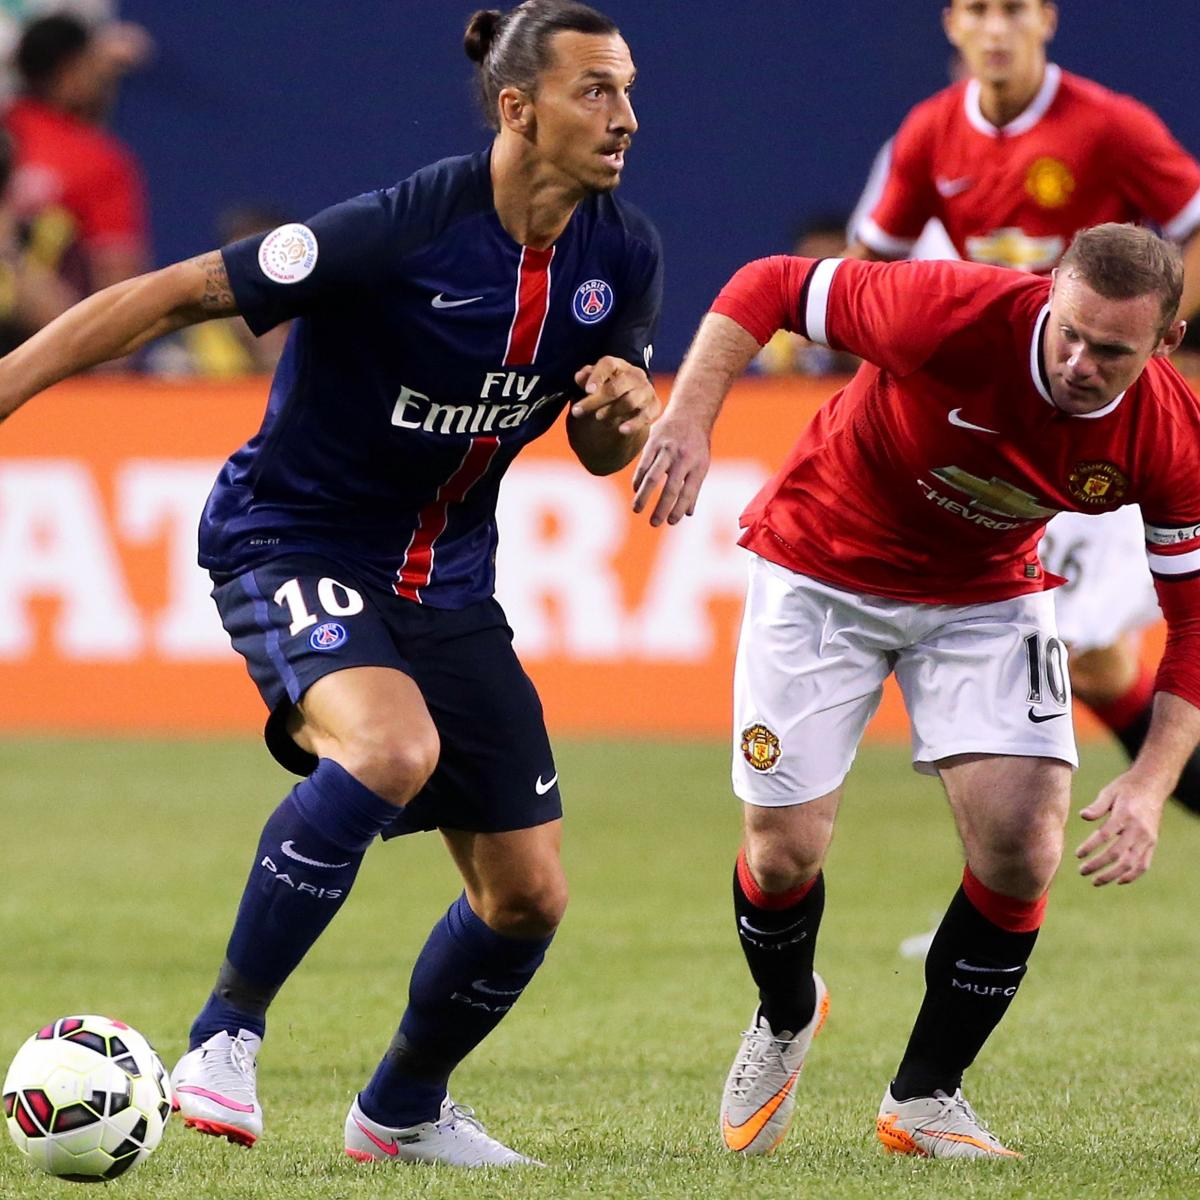 Manchester Utd Vs. PSG: Live Score, Highlights From